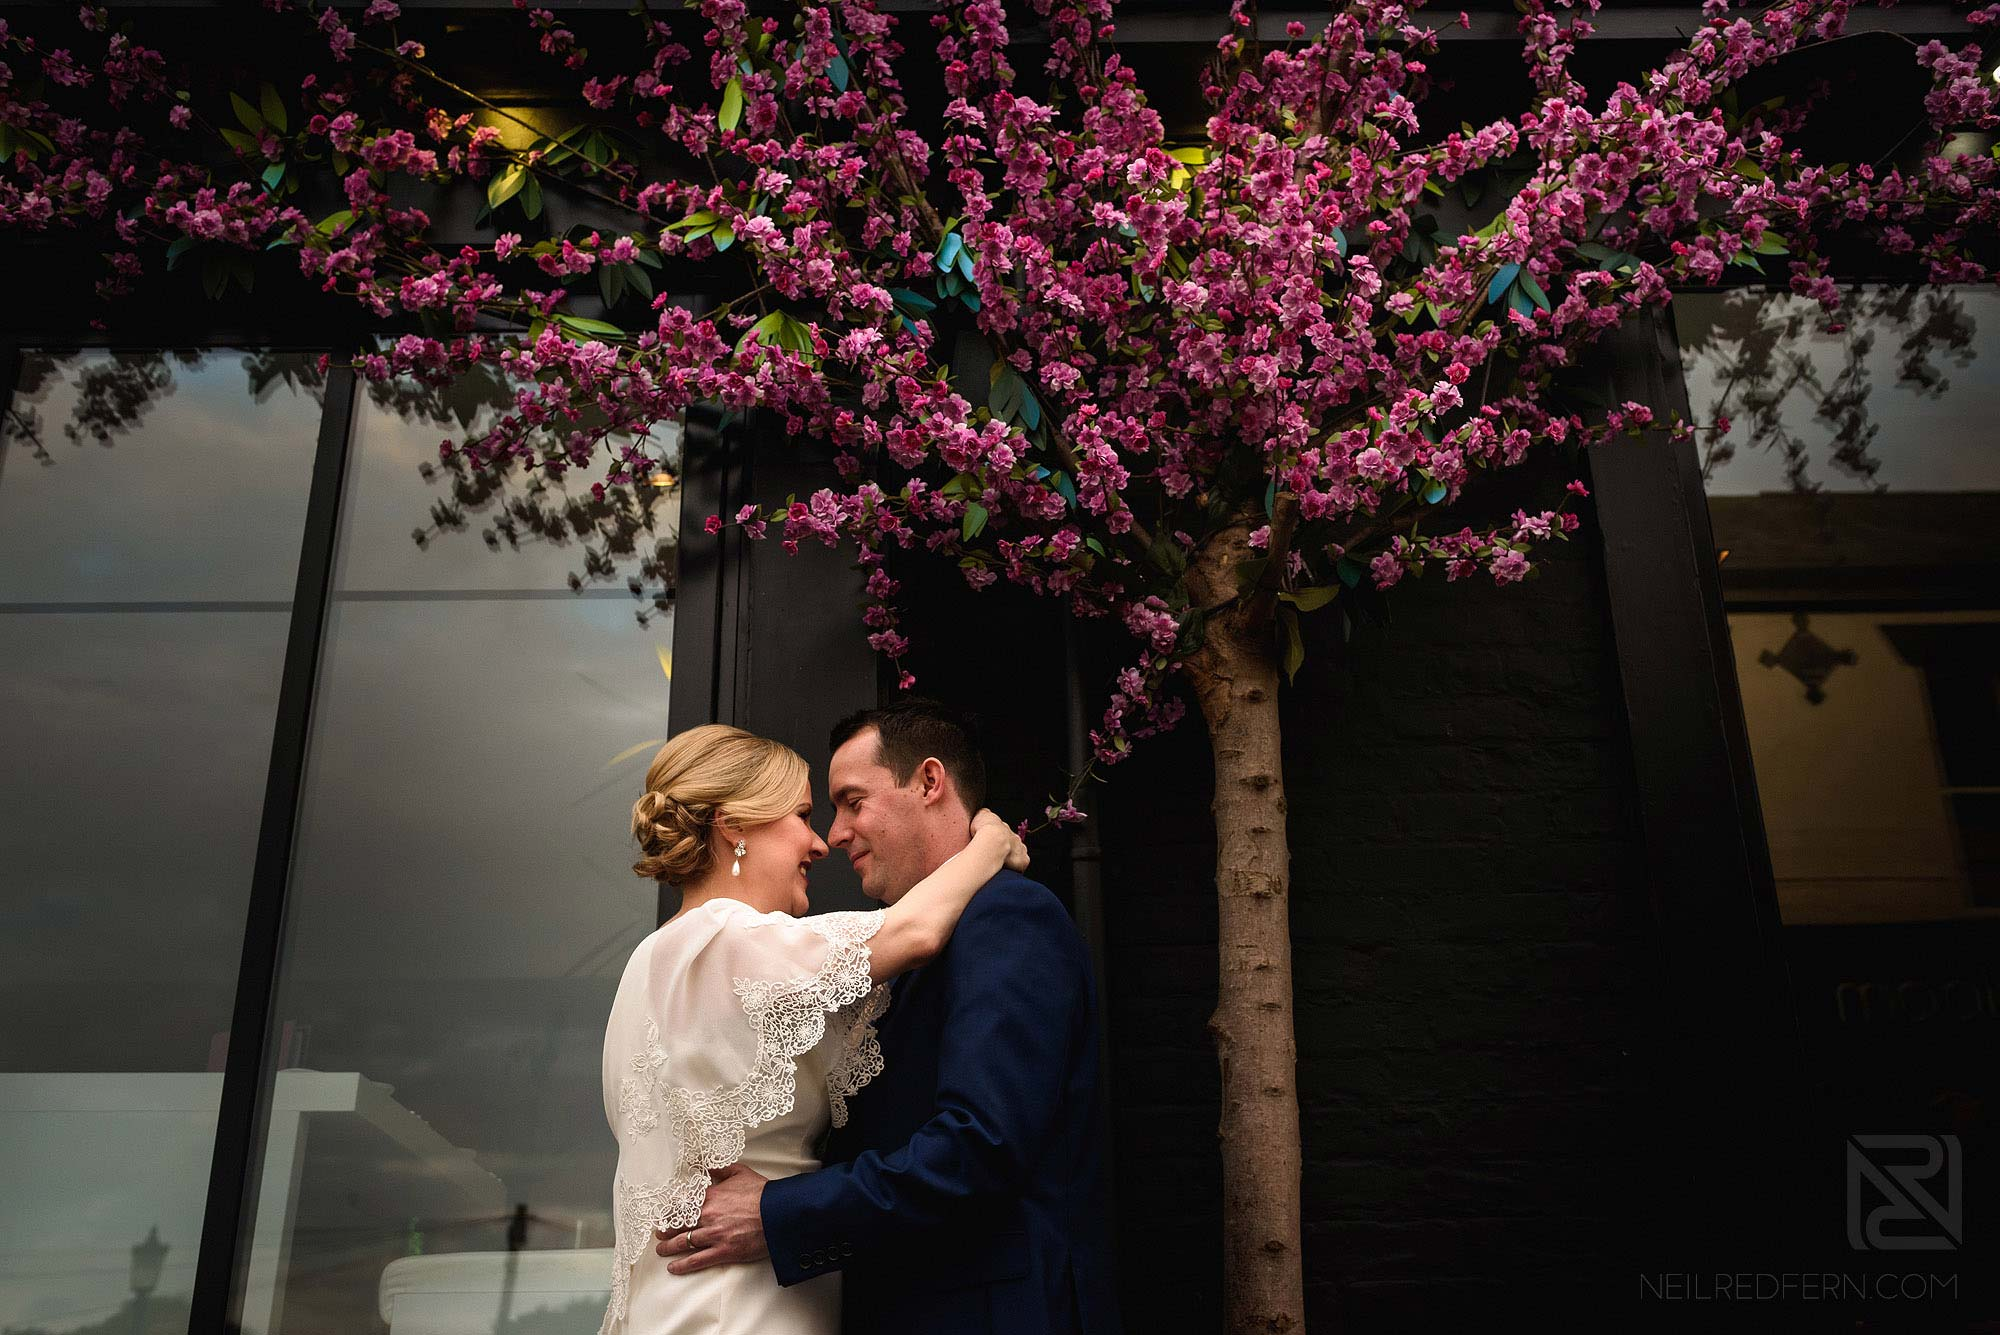 portrait photograph of bride and groom on King Street in Knutsford